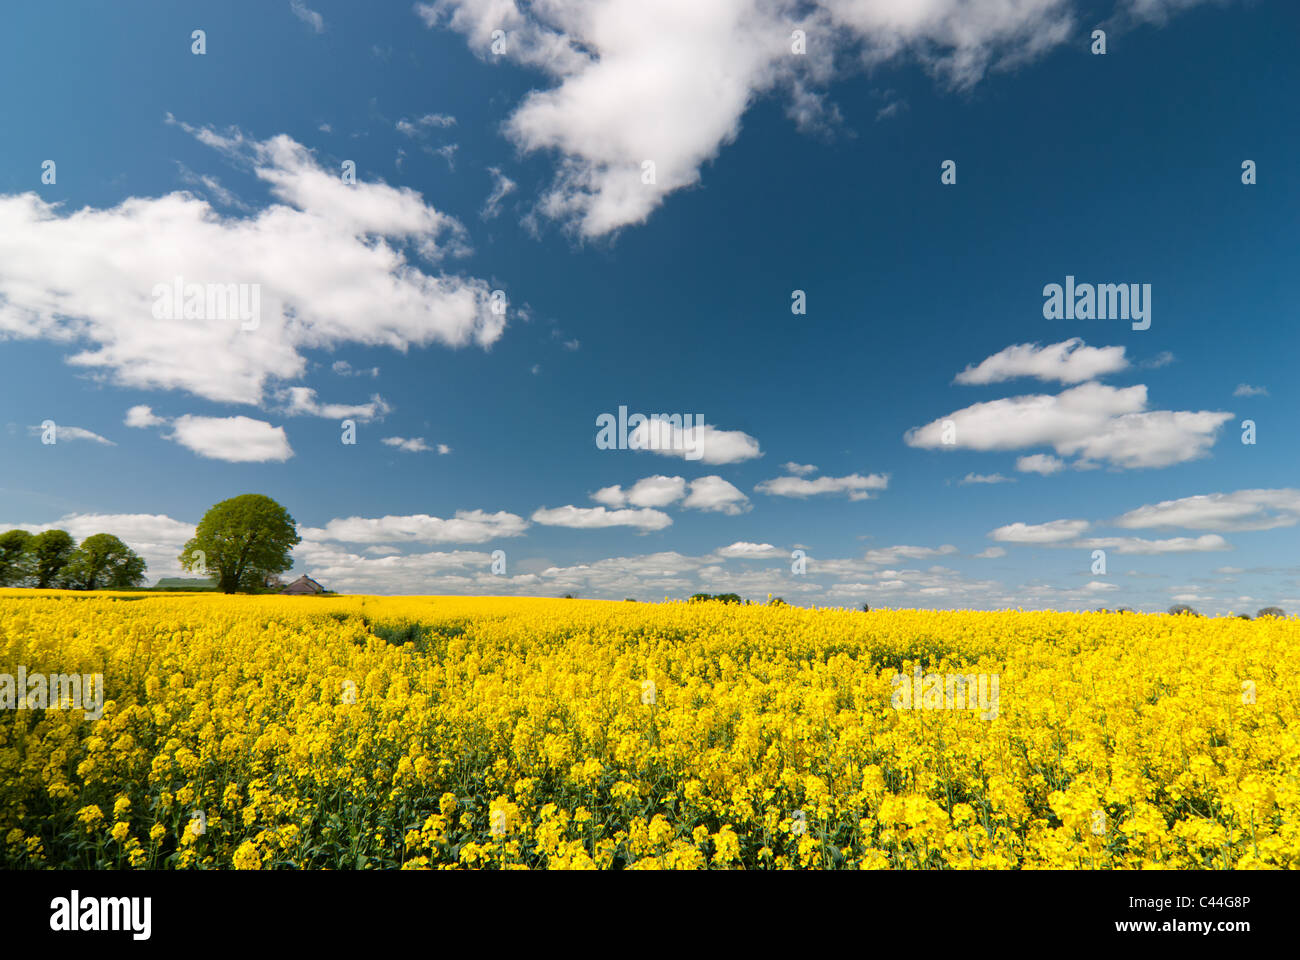 Farming for energy crops (rapesee oil) on the outskirts of Dublin. Stock Photo